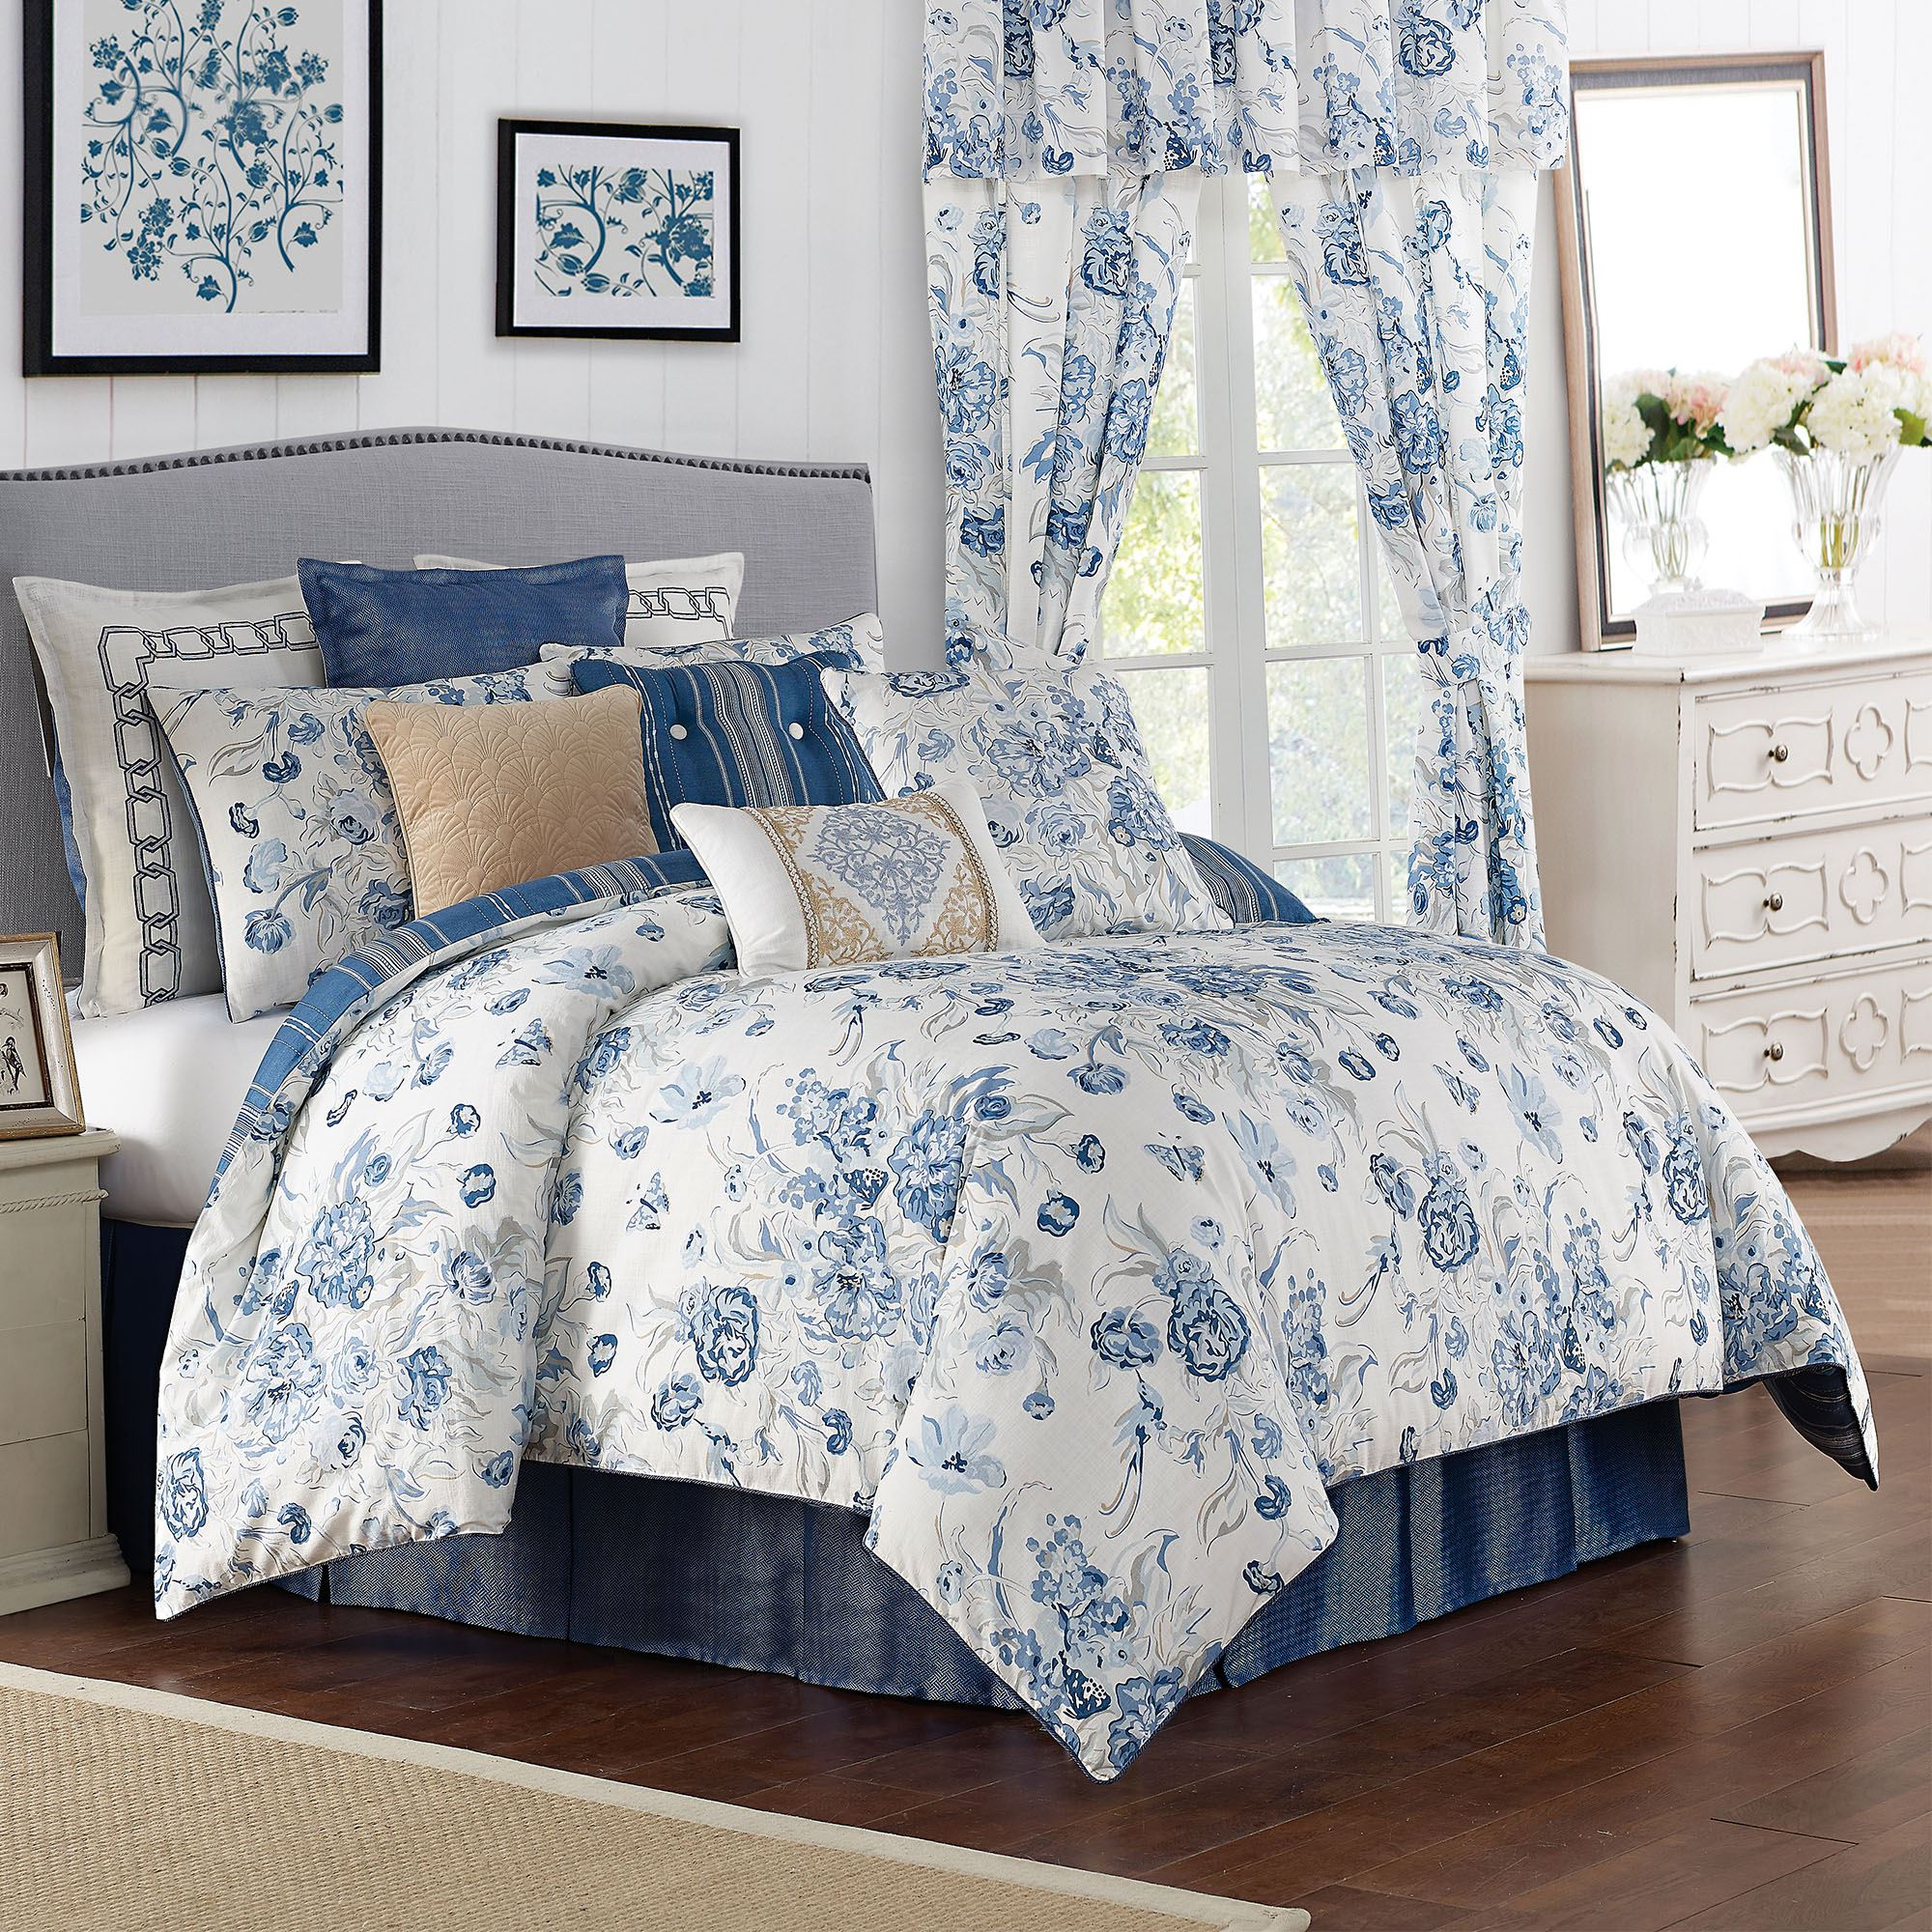 Rose Tree Bedding Cheaper Than Retail Price Buy Clothing Accessories And Lifestyle Products For Women Men